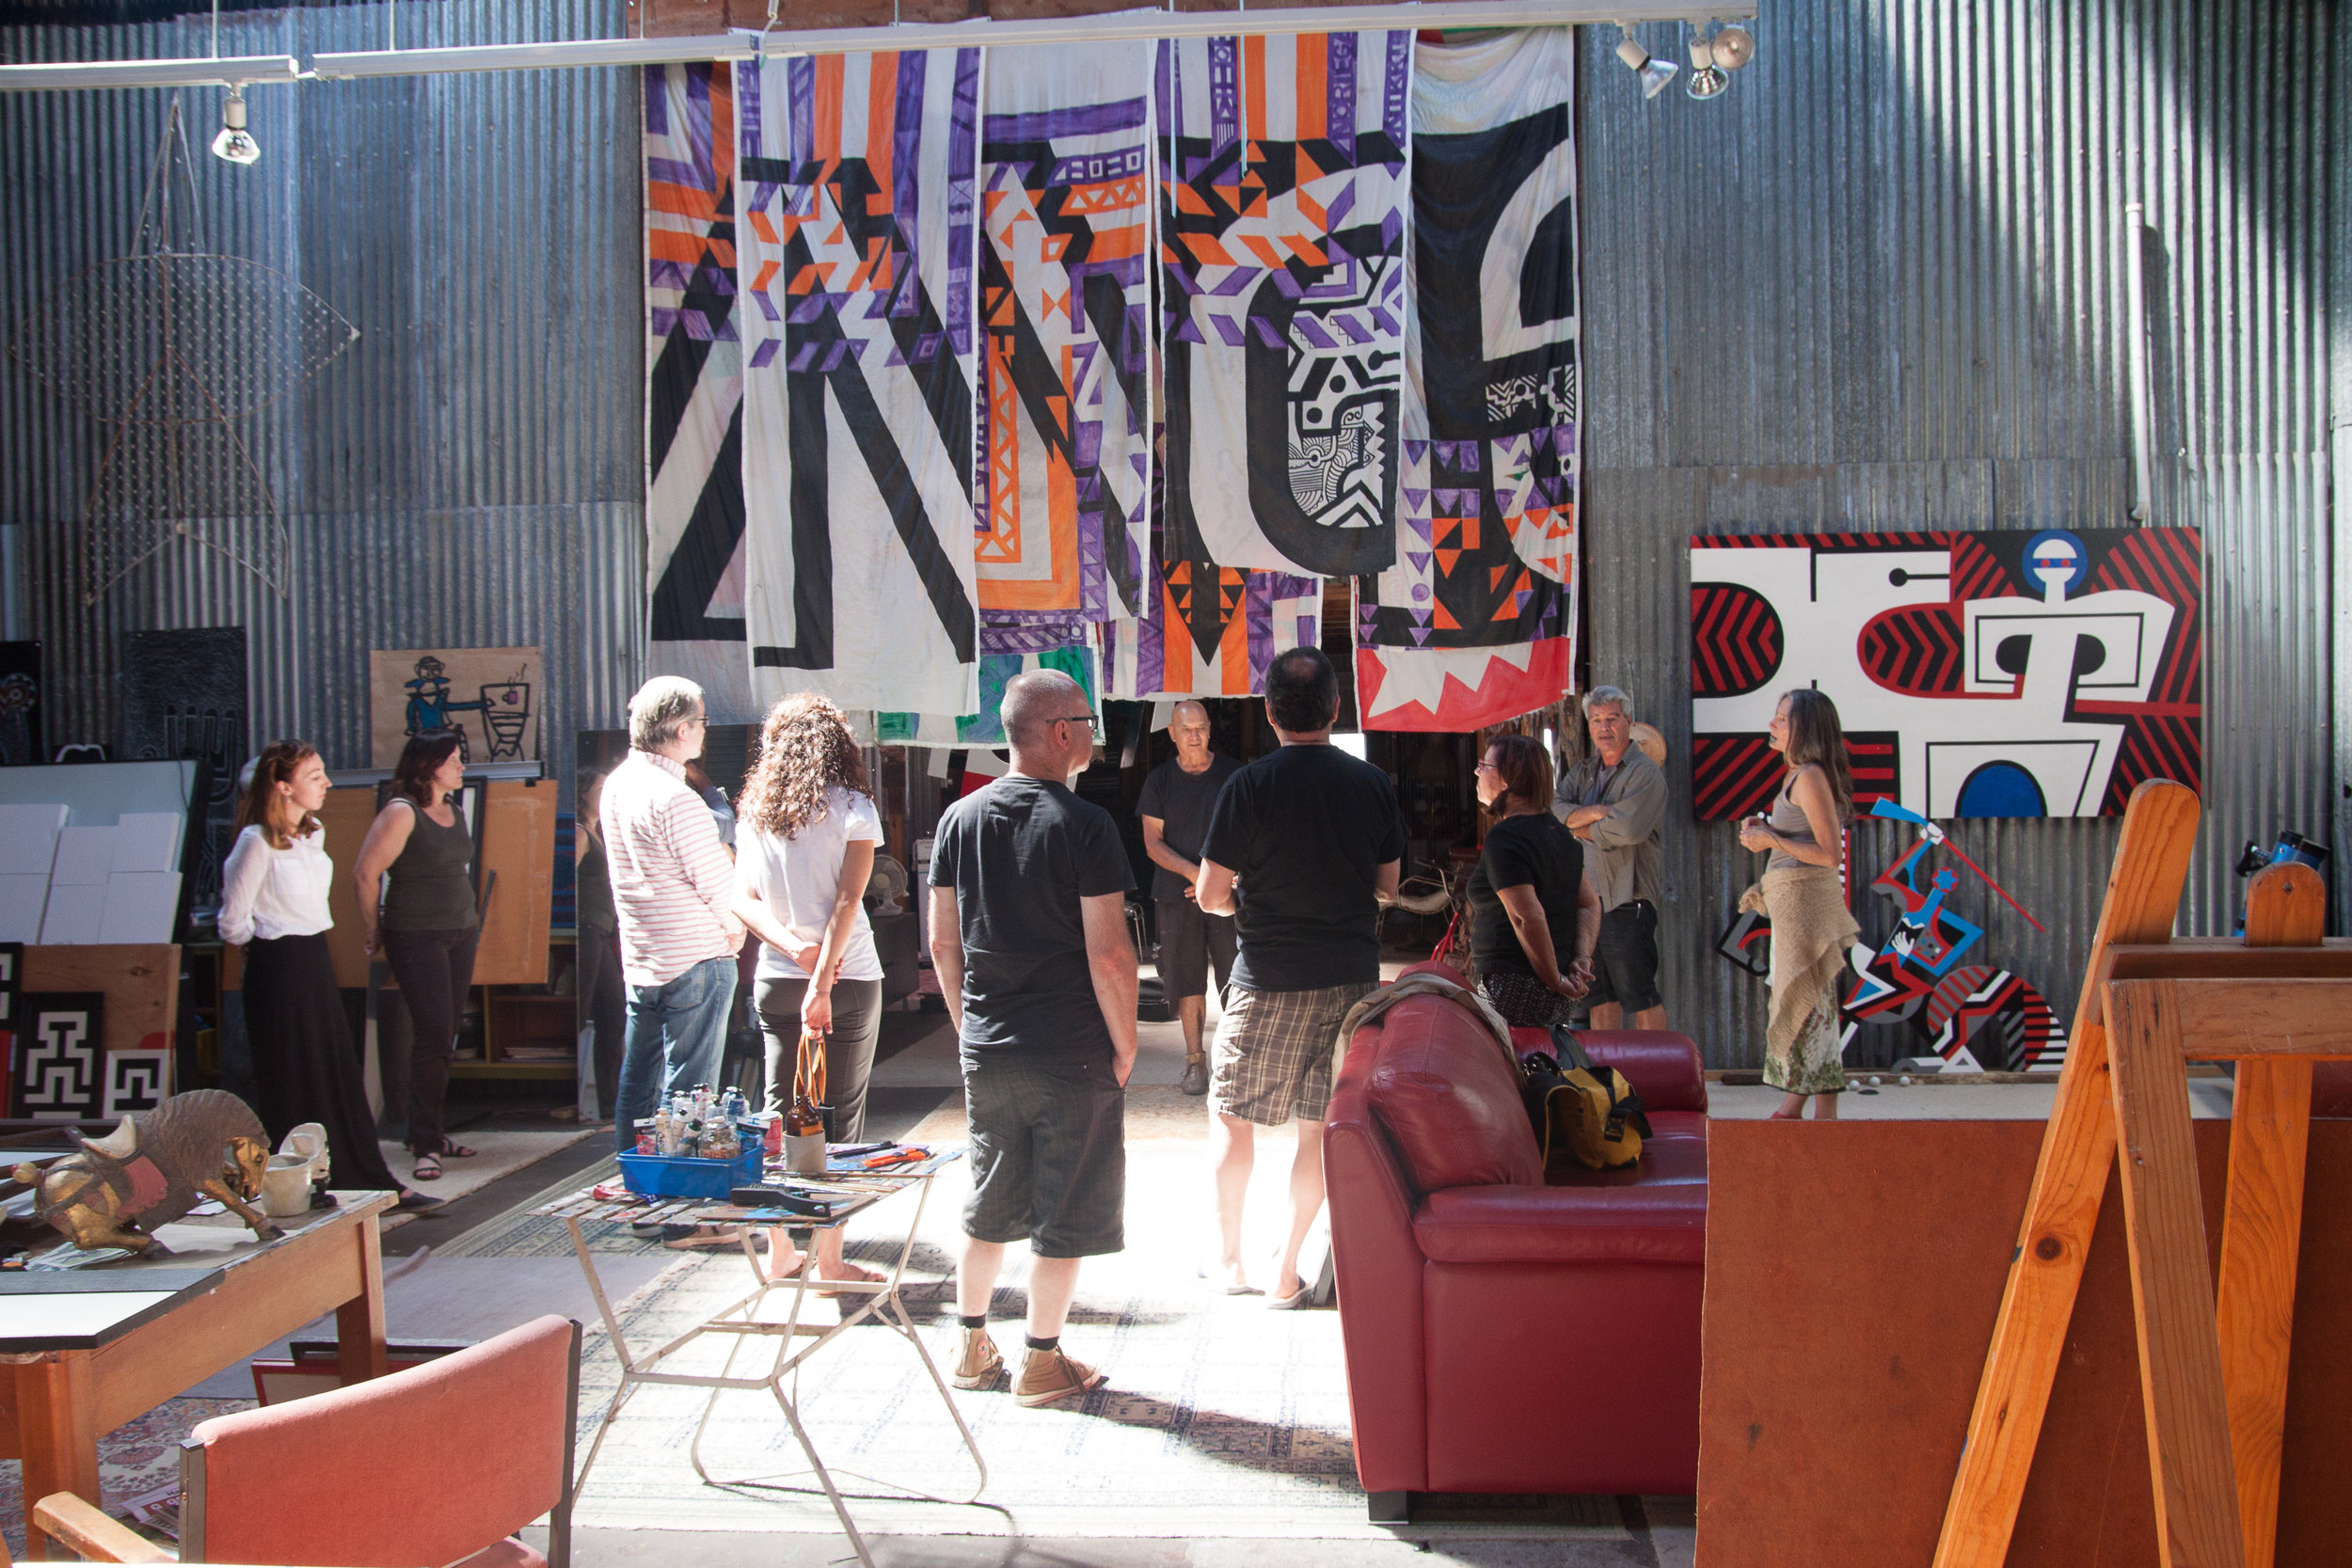 Te Timatanga, Indigenous arts & Design North Island Tour. Para Matchitt 's studio visit in Ahuriri in 2016.